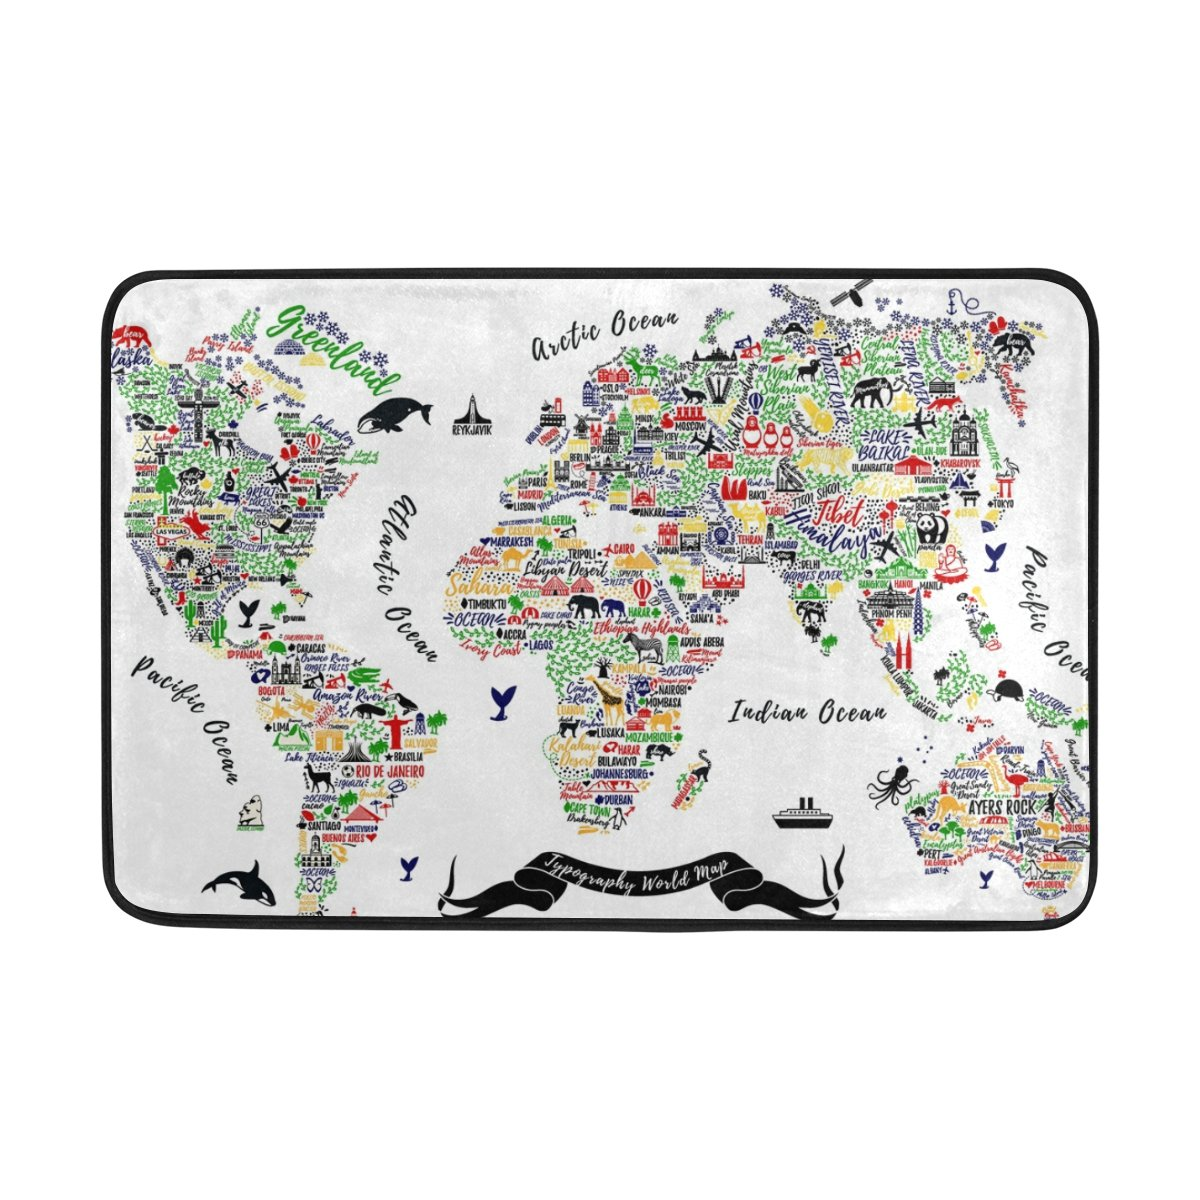 Amazon.com : INGBAGS JSTEL World Map Travel Poster Cities ... on tropical jungle map, studio map, metal map, industrial map, office map, color map, nature map, shopping map, traditional map, medieval village layout map, night map, business map, high resolution map, fashion map, table map, security map, general map, street map, daytime map, residential map,